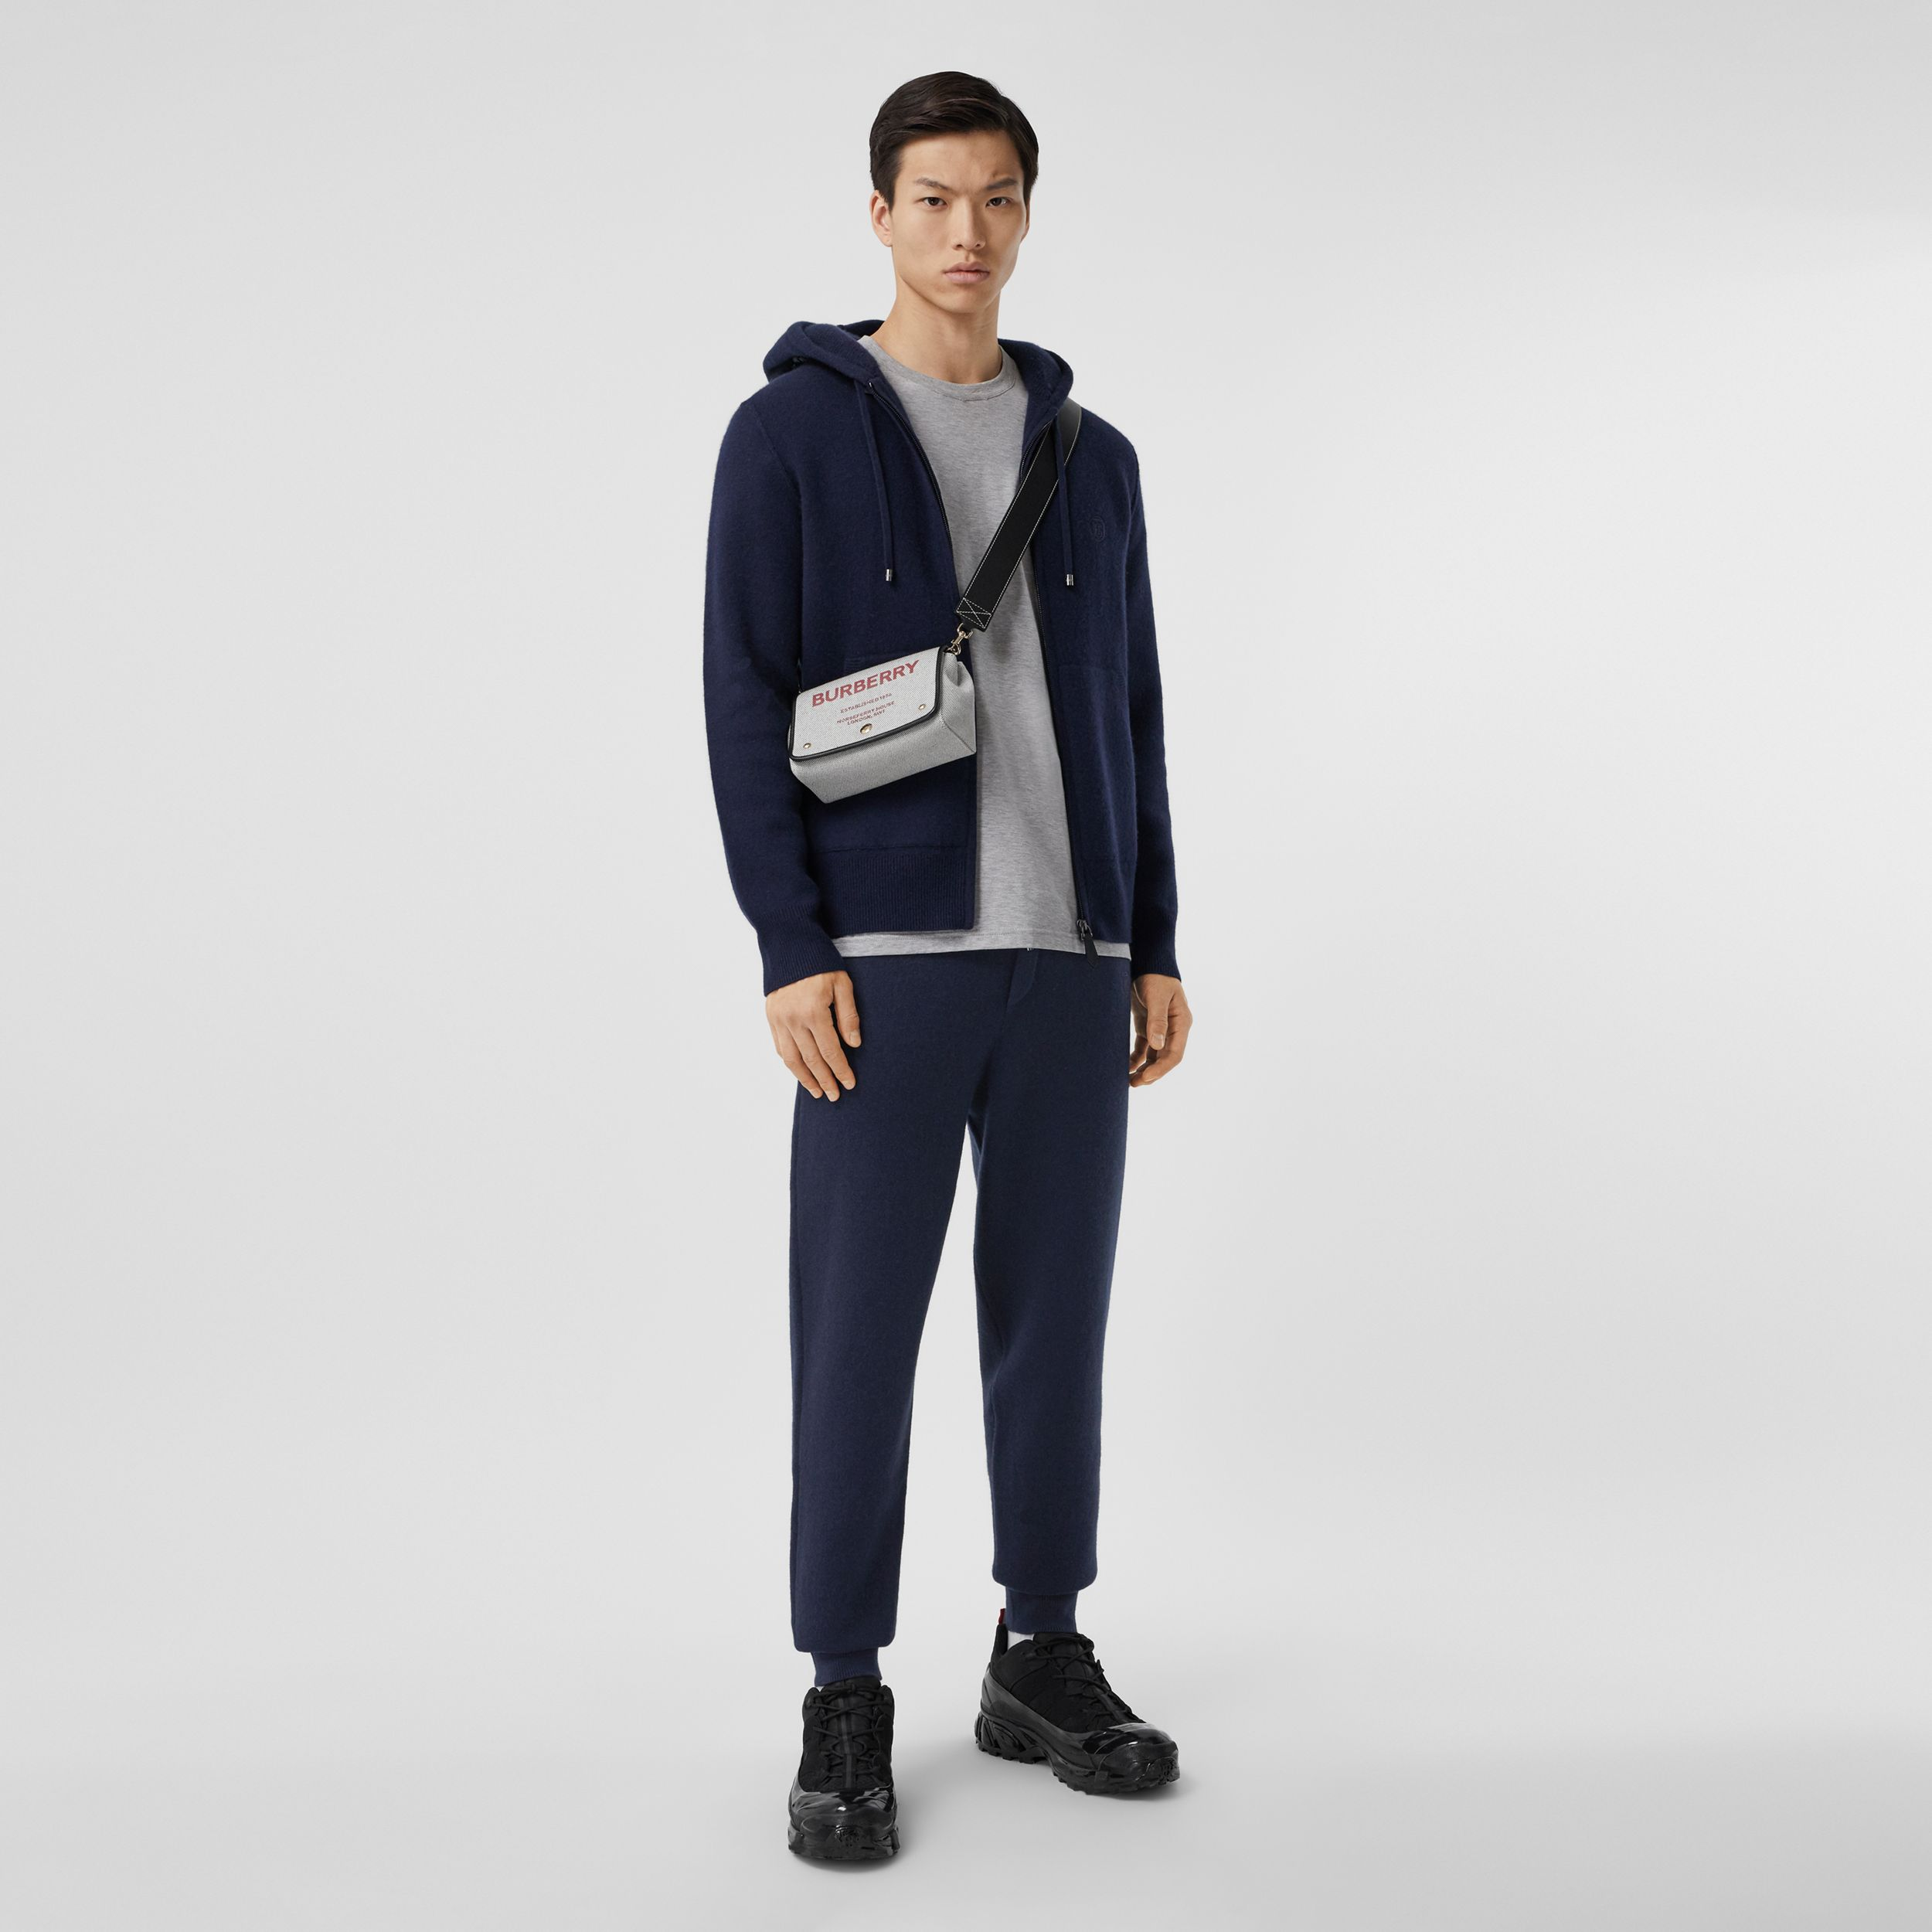 Monogram Motif Cashmere Blend Jogging Pants in Navy - Men | Burberry - 1